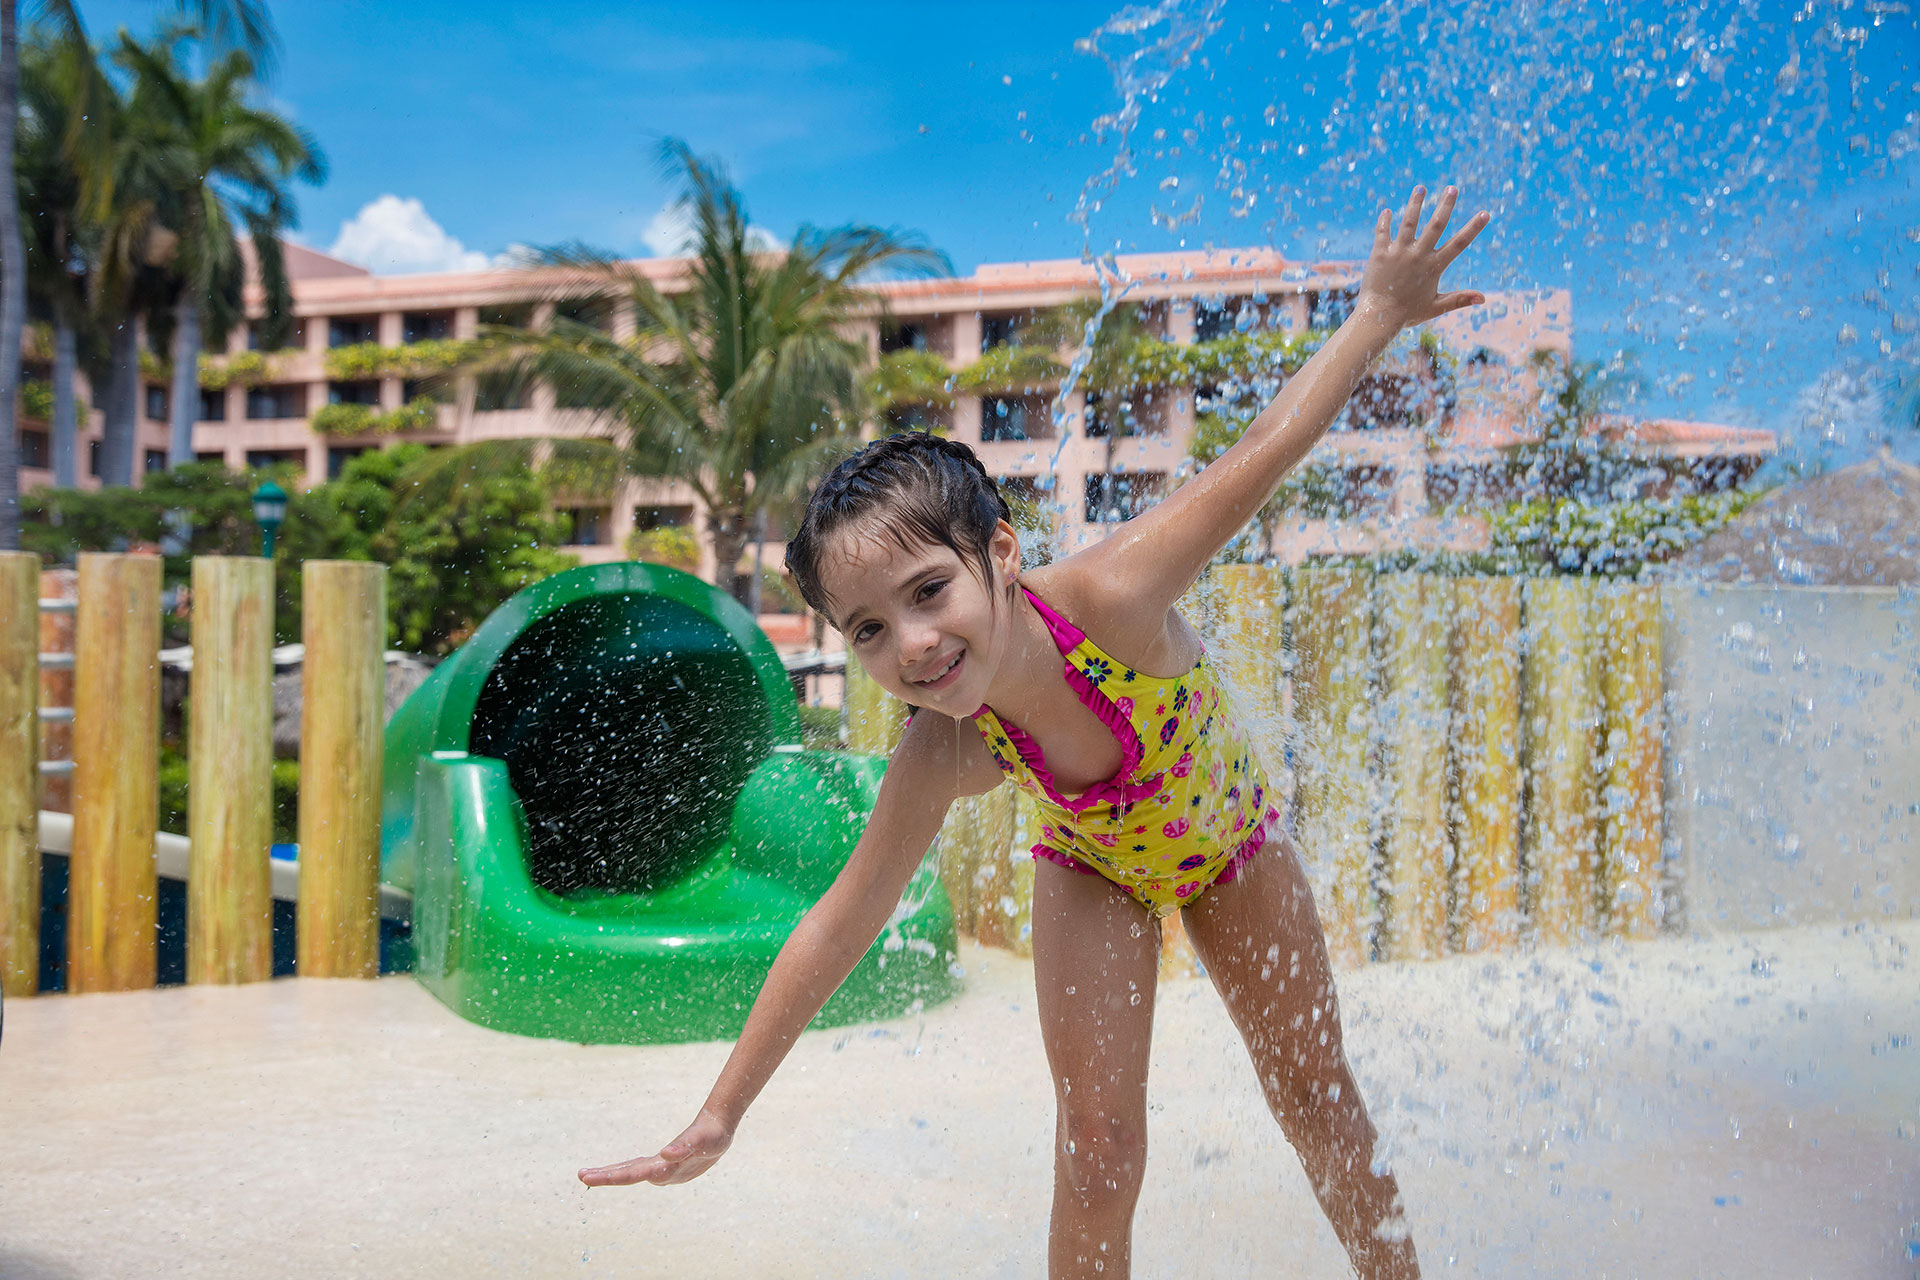 Water Park at Barcelo Huatulco; Courtesy of Barcelo Huatulco